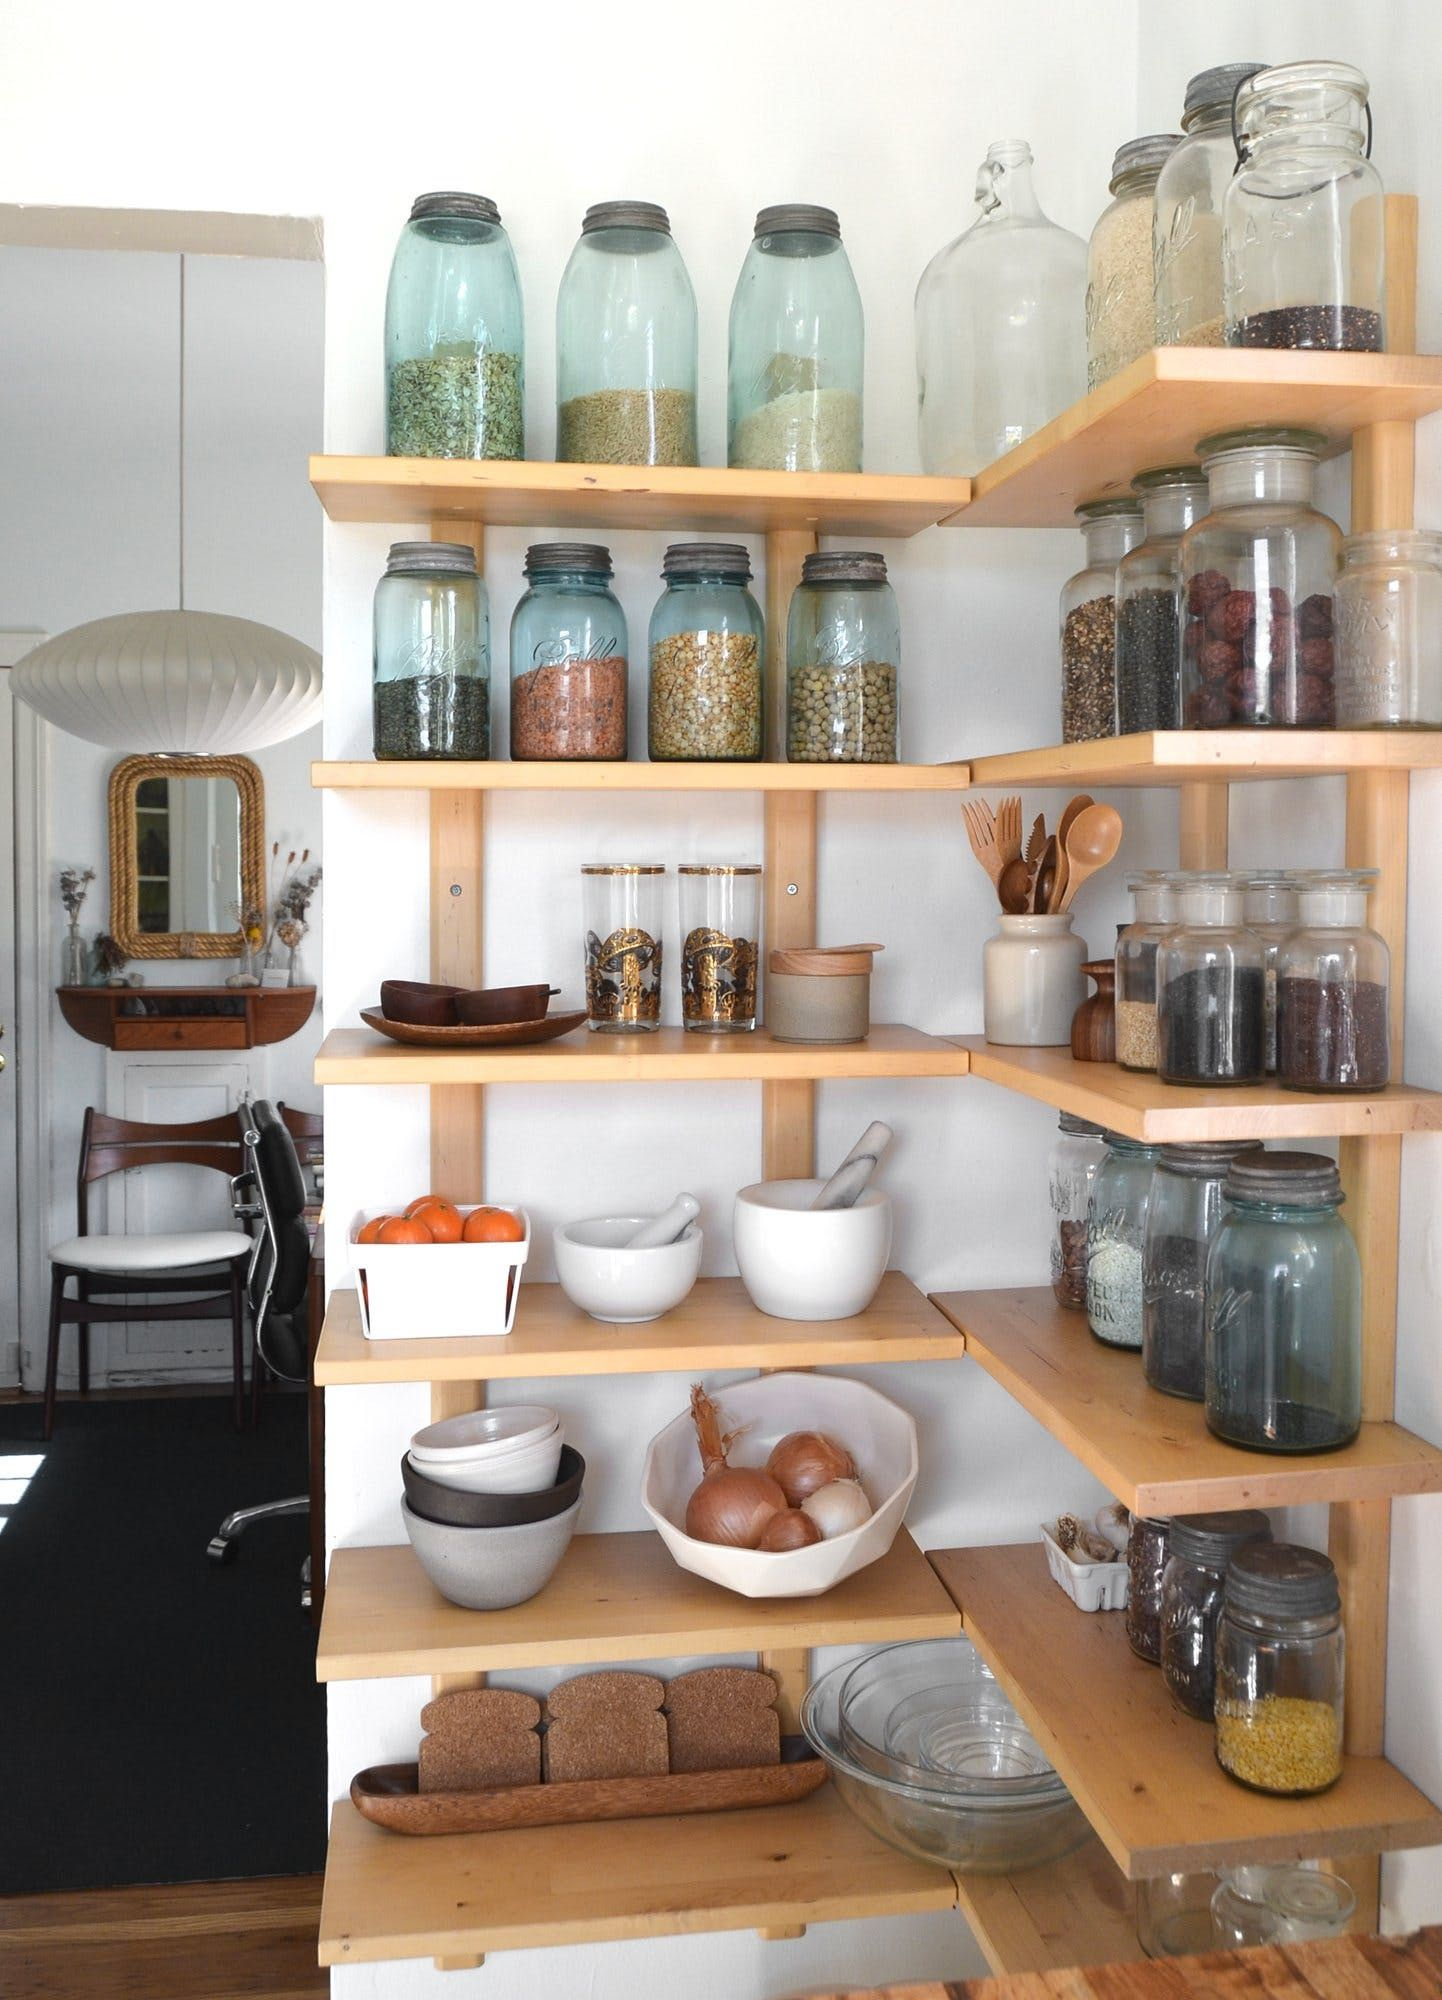 a glimpse inside and outside my kitchen kitchens shelving and #1: 0d090d0a2b7305496ef339e6fcbcb0b9 jpg